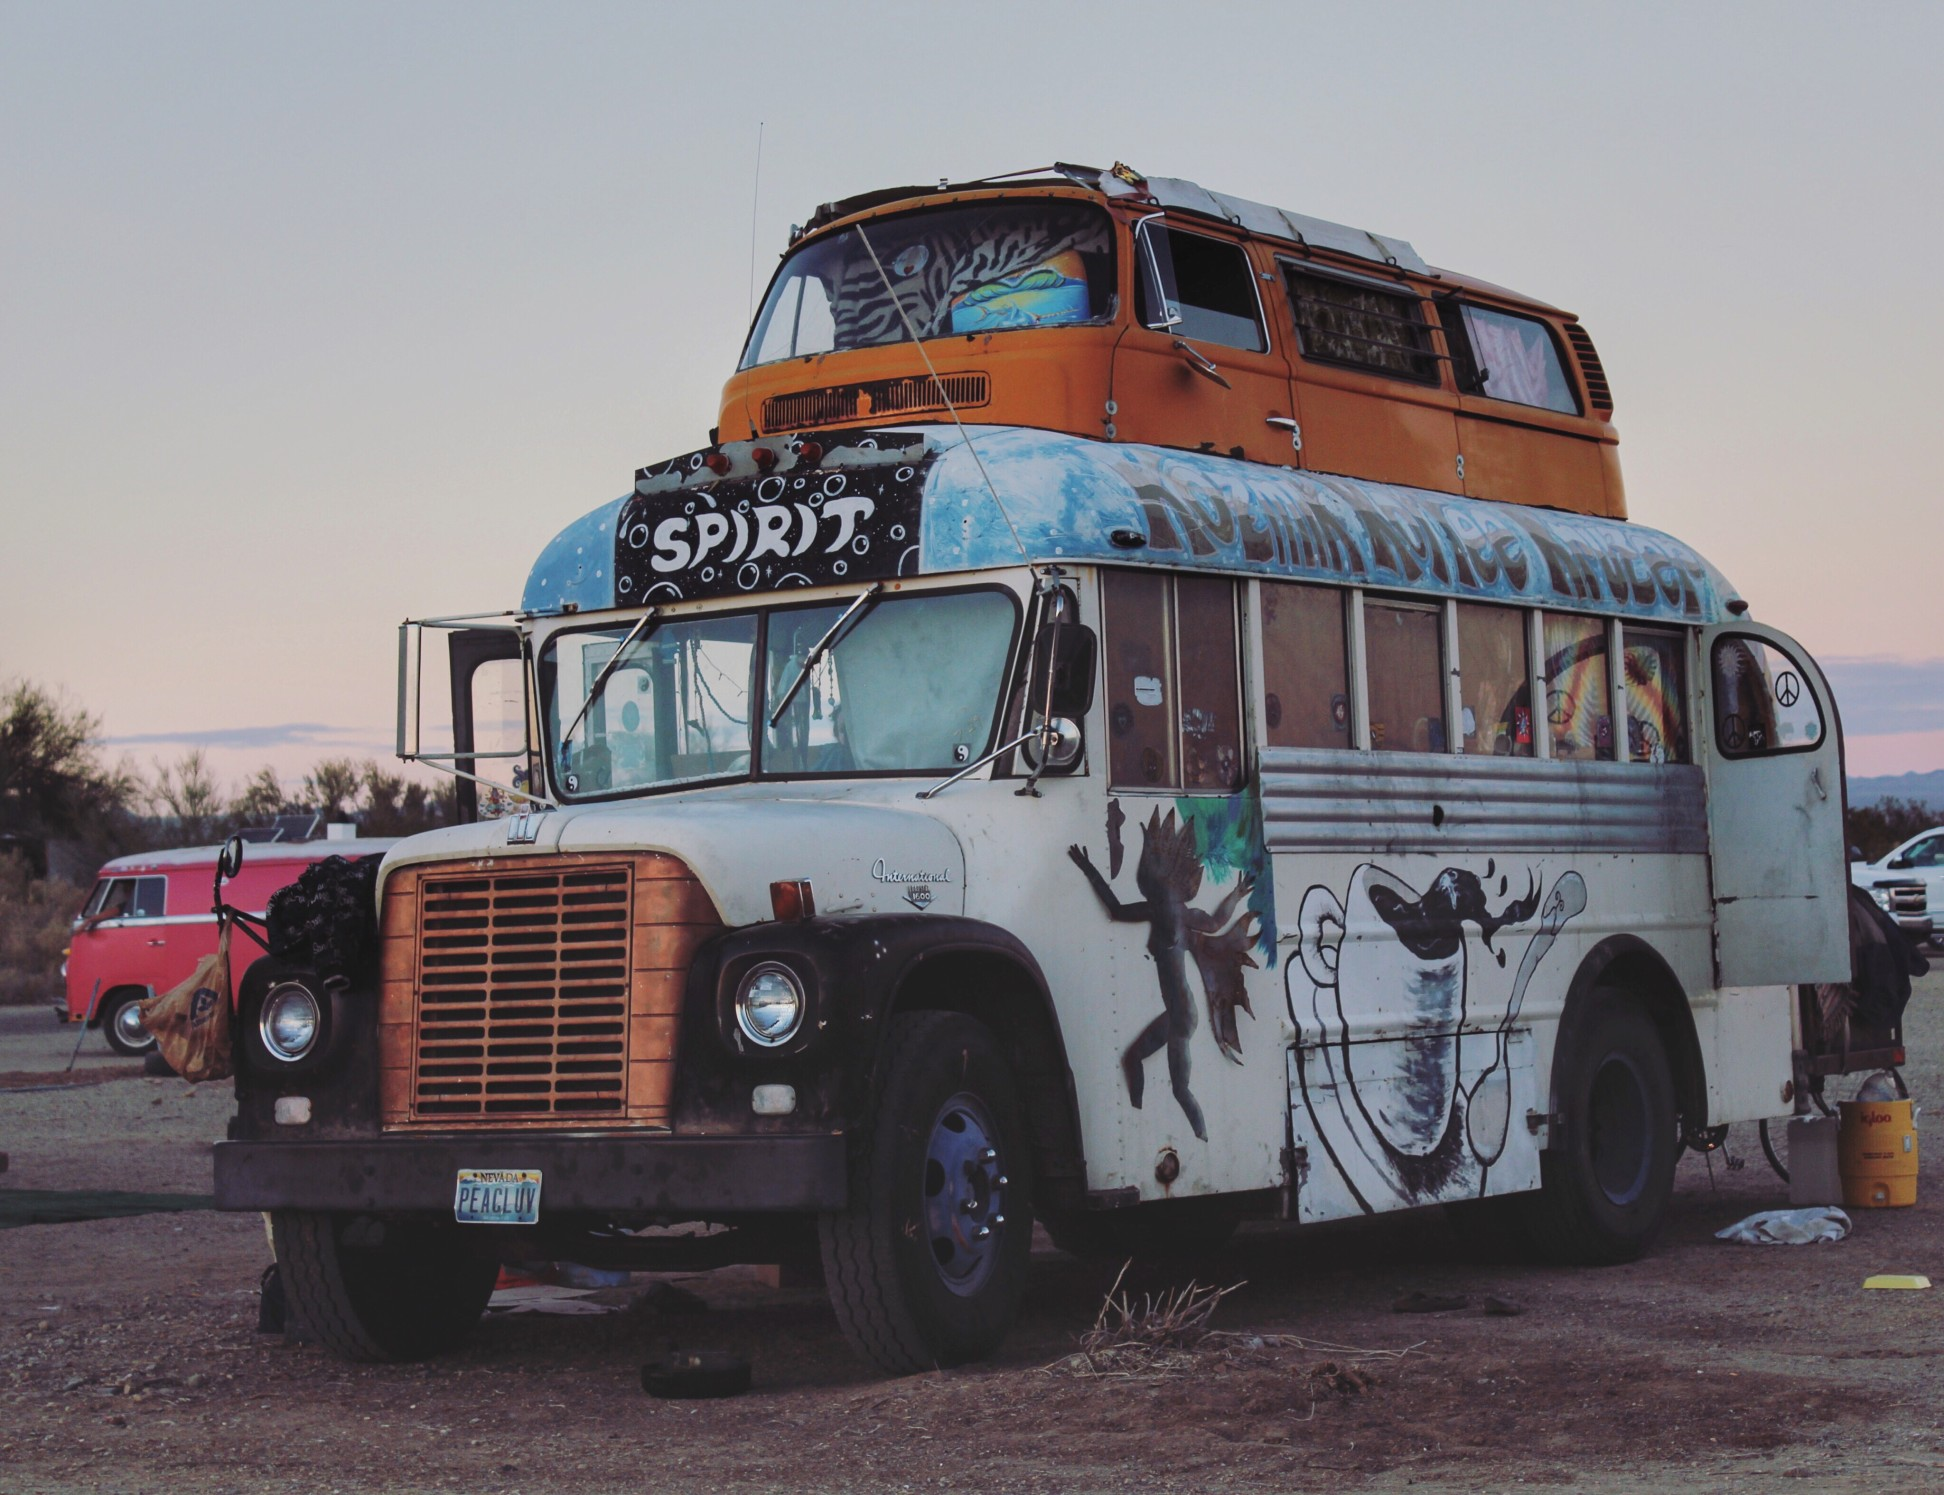 Greetings From Slab City, USA